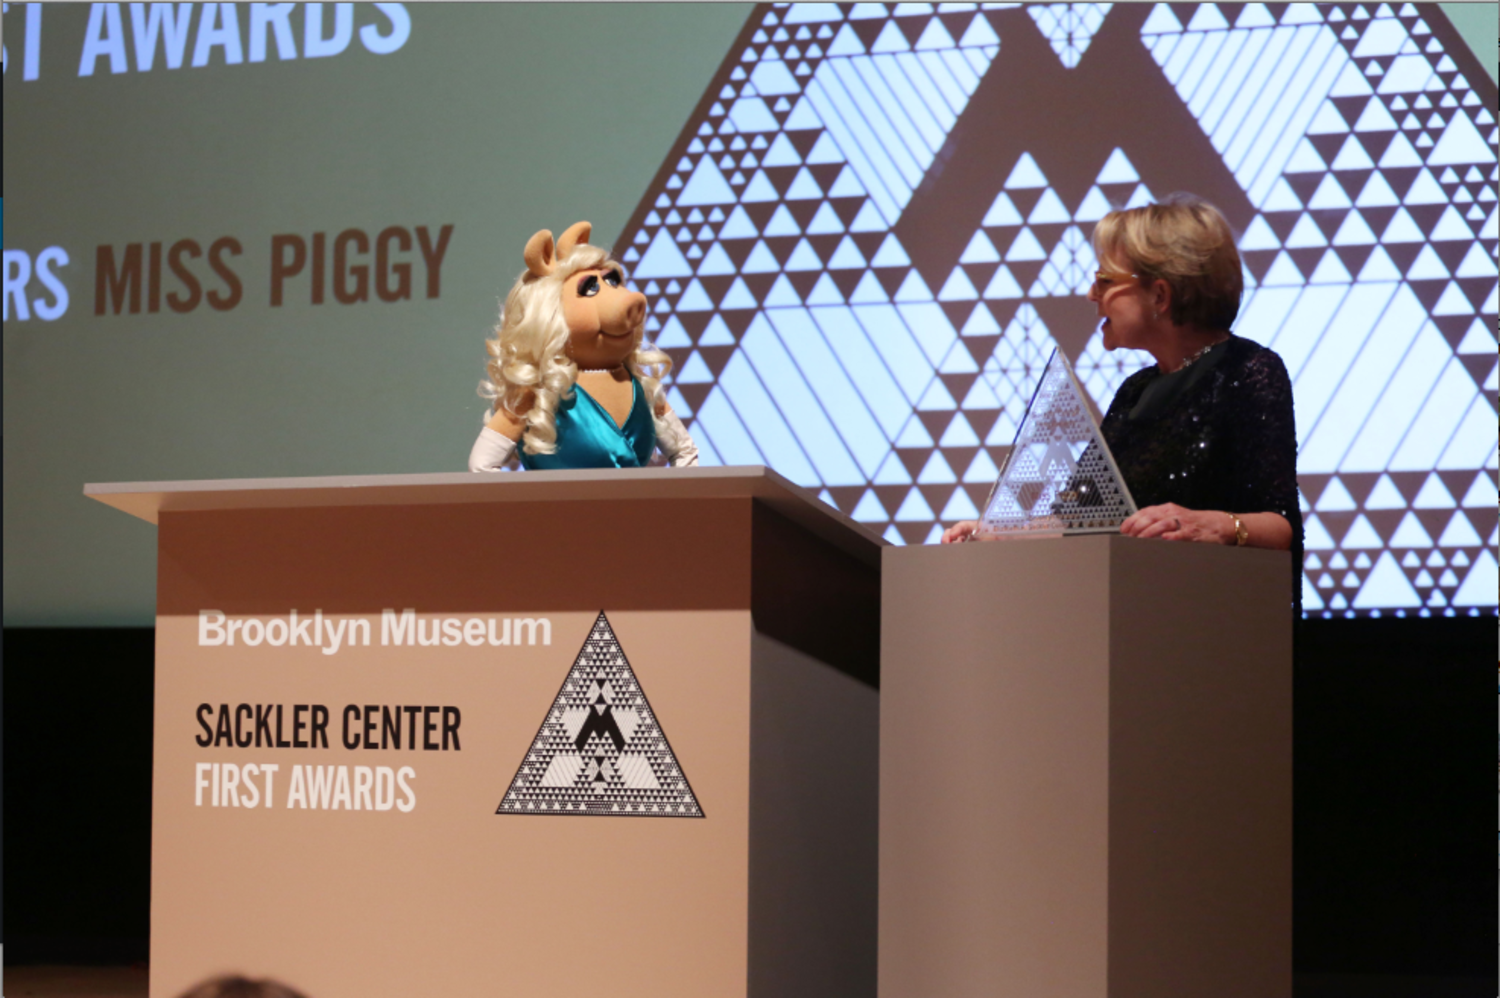 Miss Piggy accepts her award.